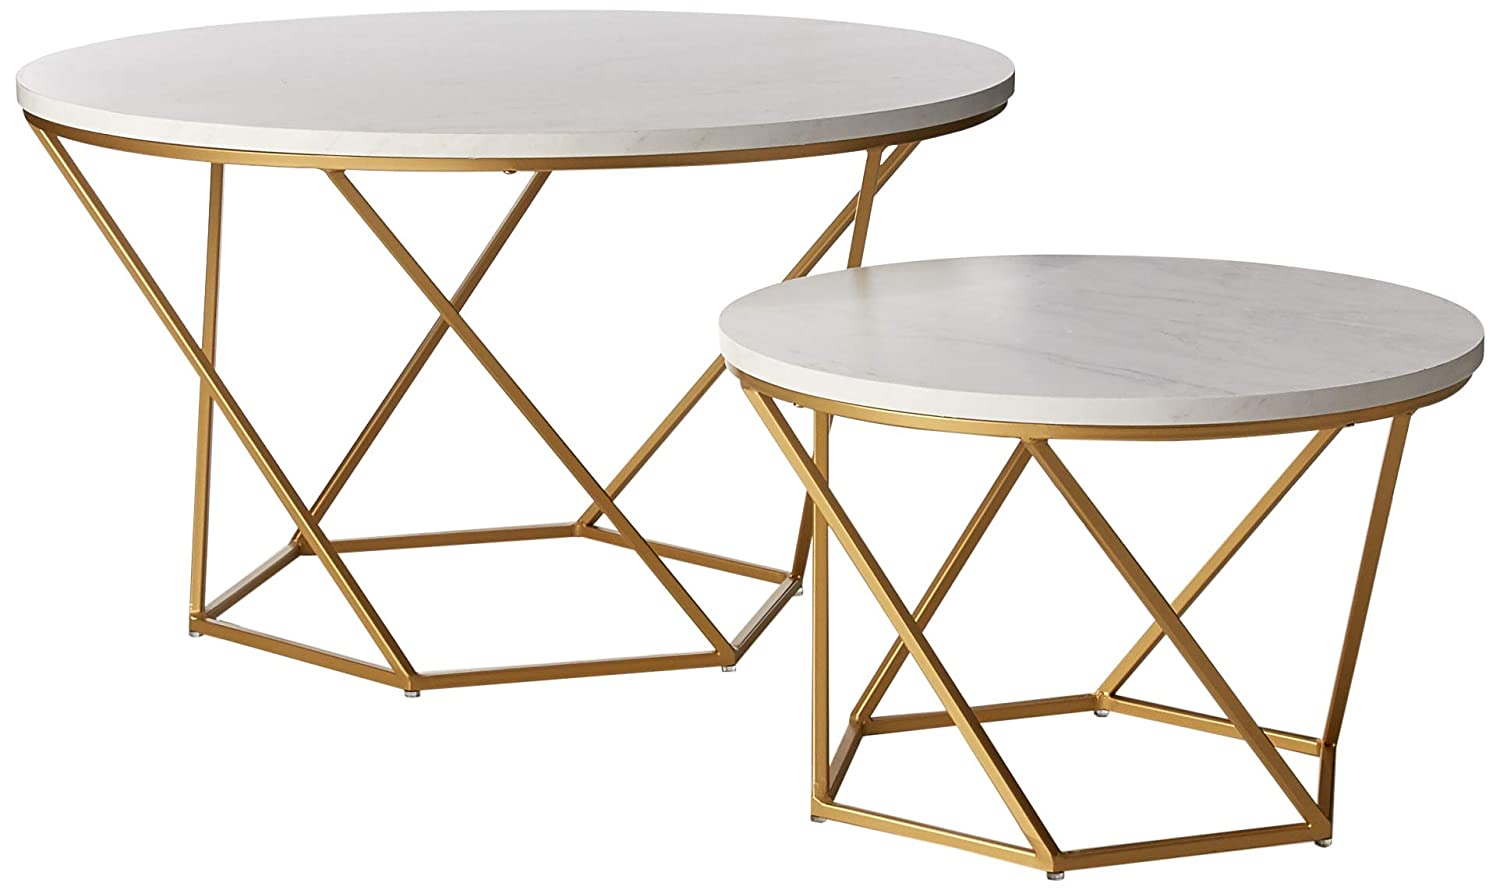 WE Furniture AZF28CLRGMG Modern Geometric Nesting Coffee Tables for Living Room, Set of 2, Faux White Marble Top with Gold Base